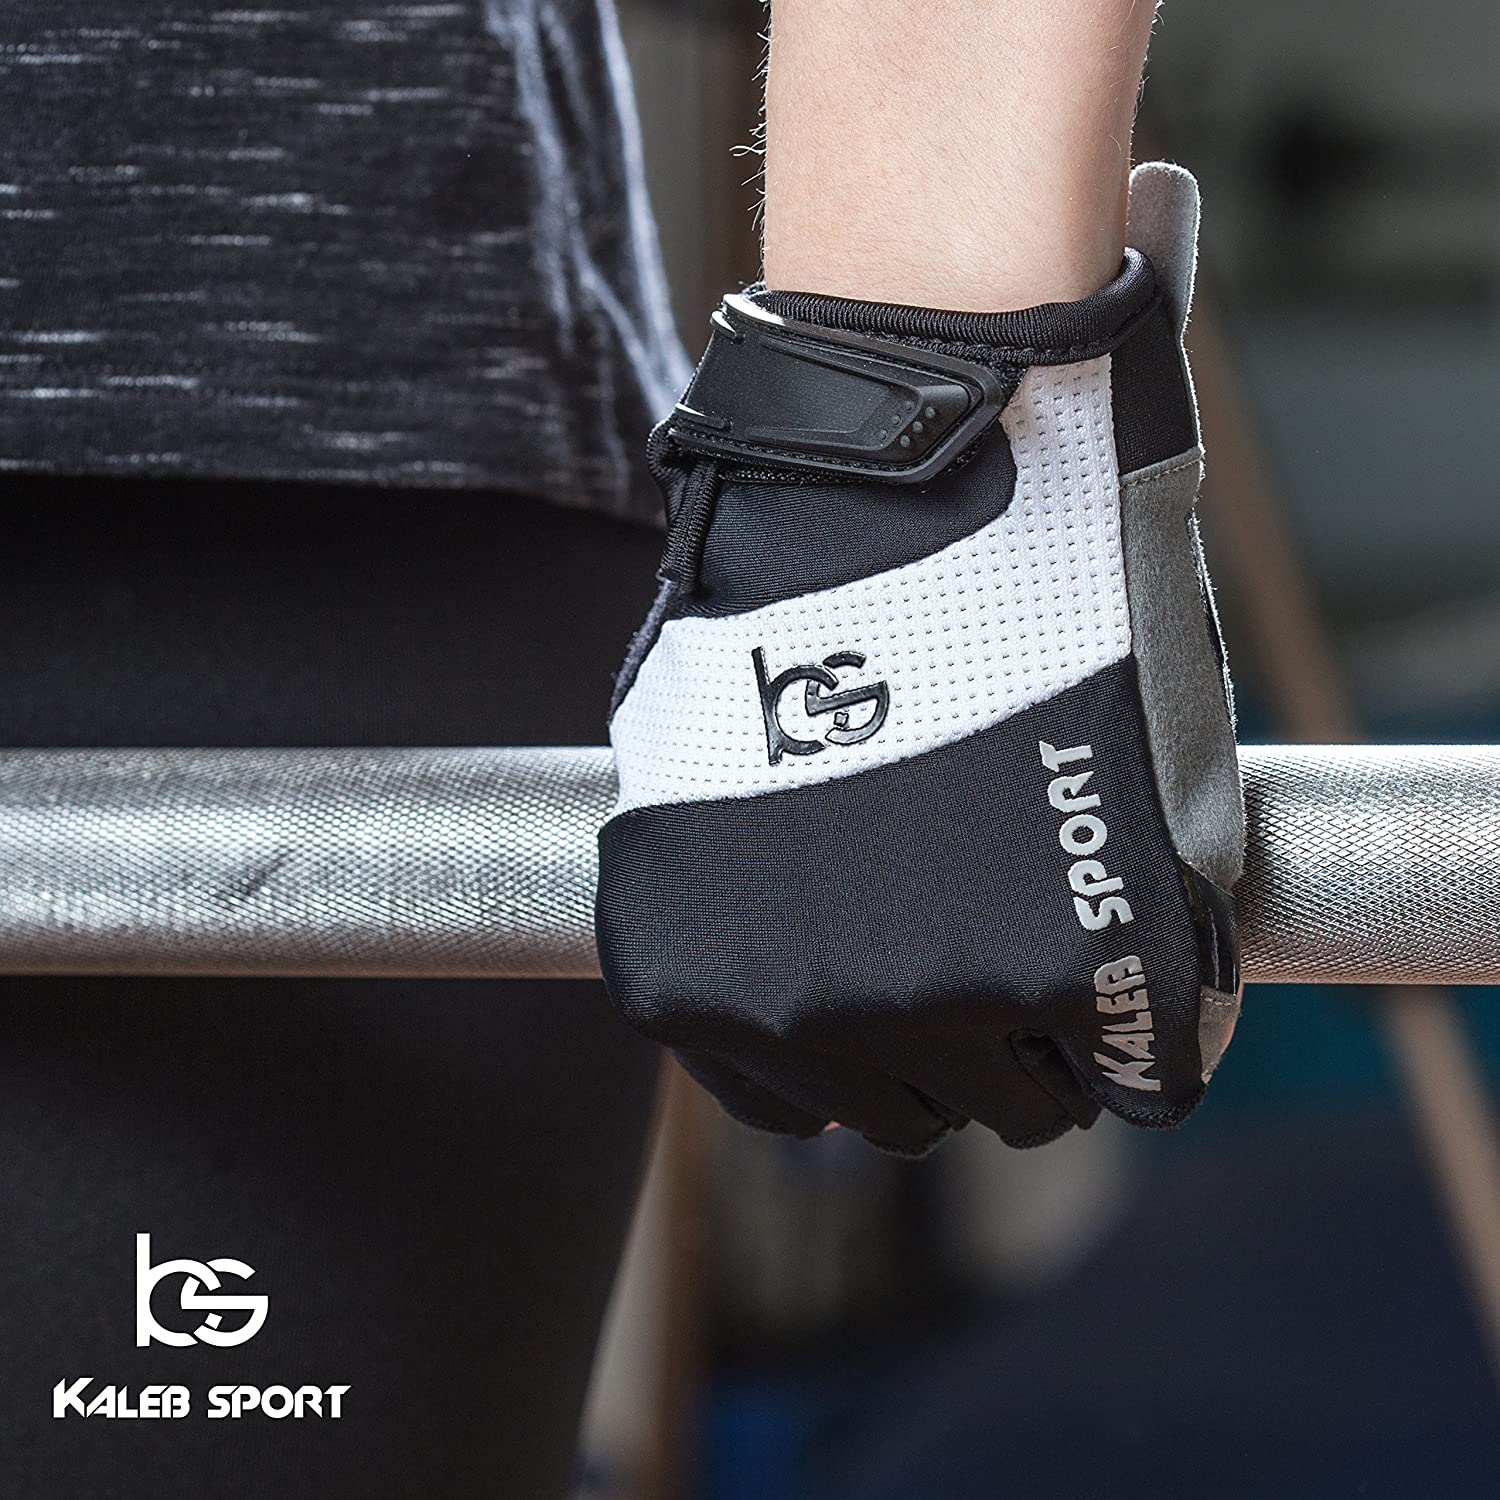 Suitable for Both Men /& Women Improved Ventilation Gym Workout Great for Rowing Kayaking Kaleb Sport Universal Gloves with Special Rubber Coating for Non-Slip Grip